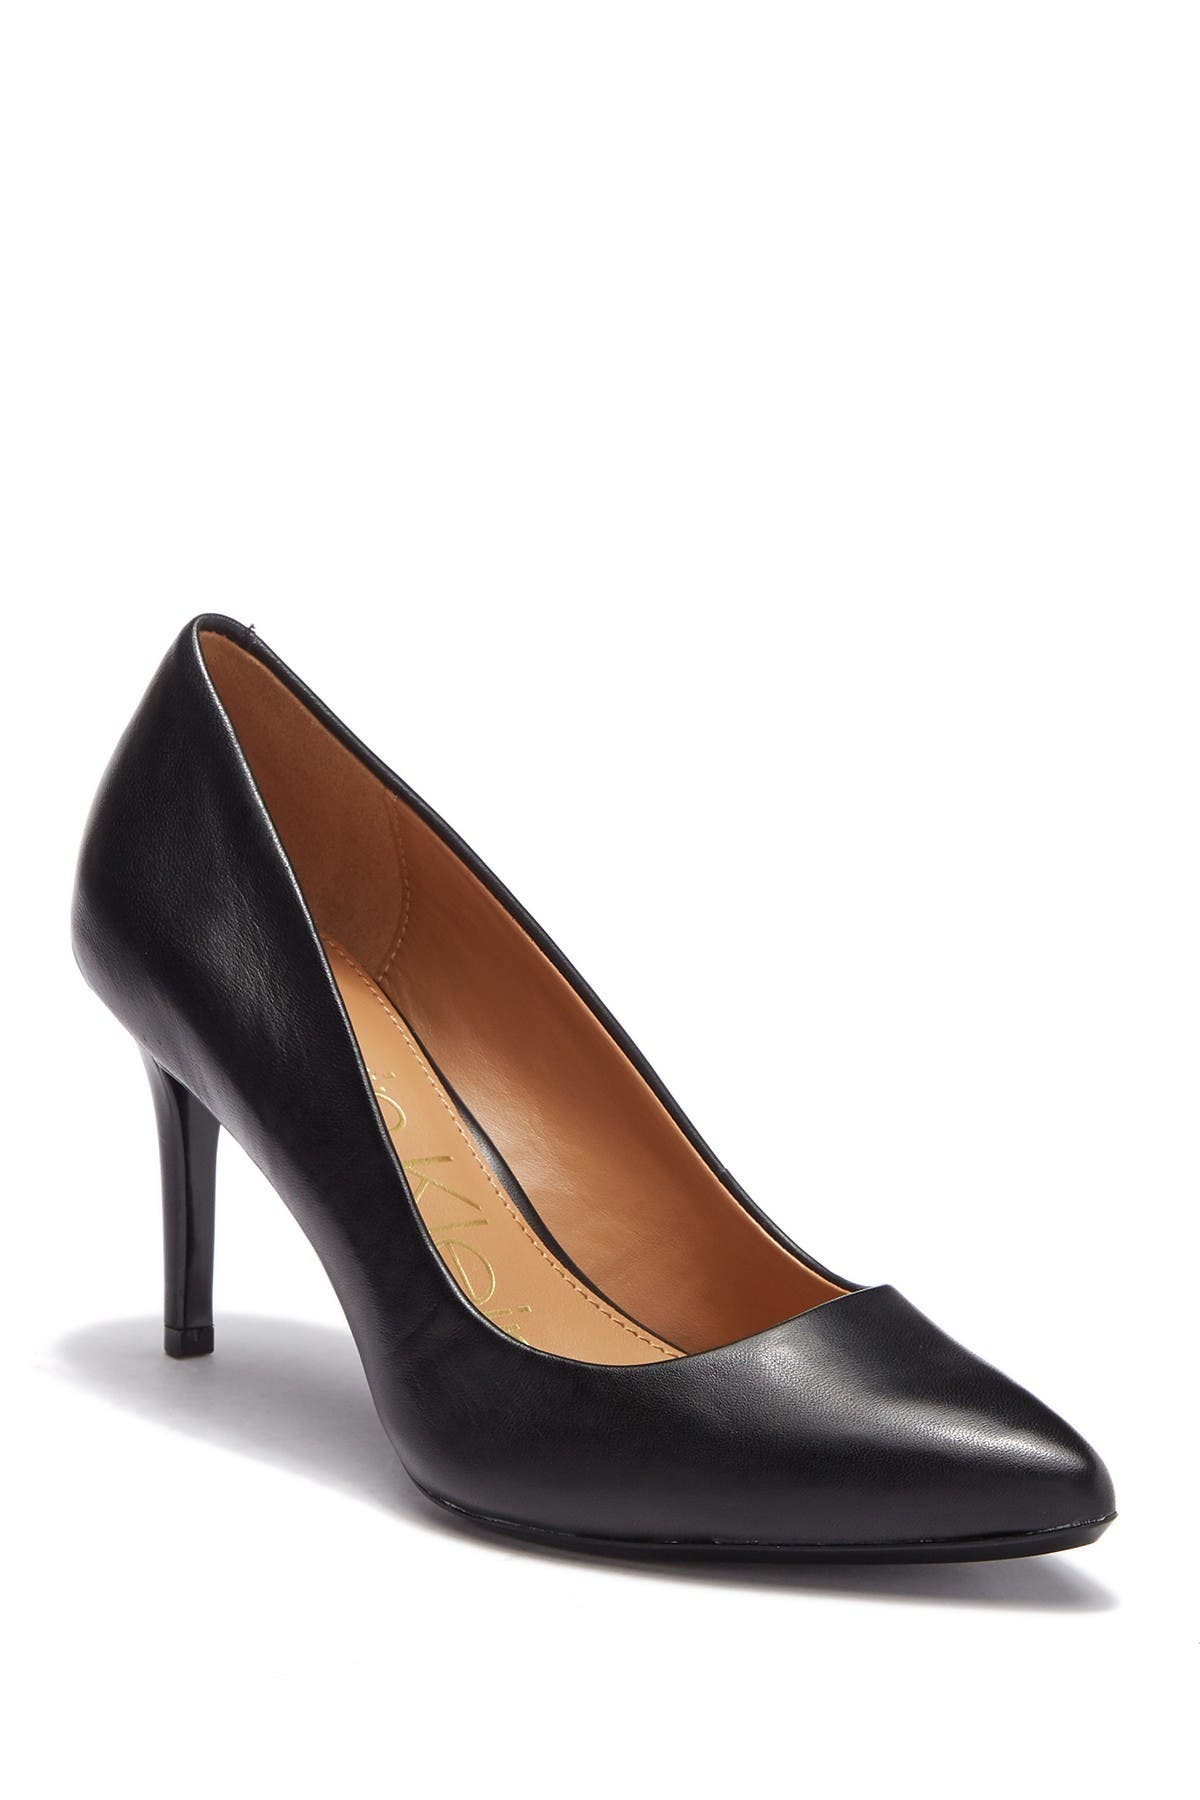 Image of Calvin Klein Kamara Nappa Smooth Leather Pump